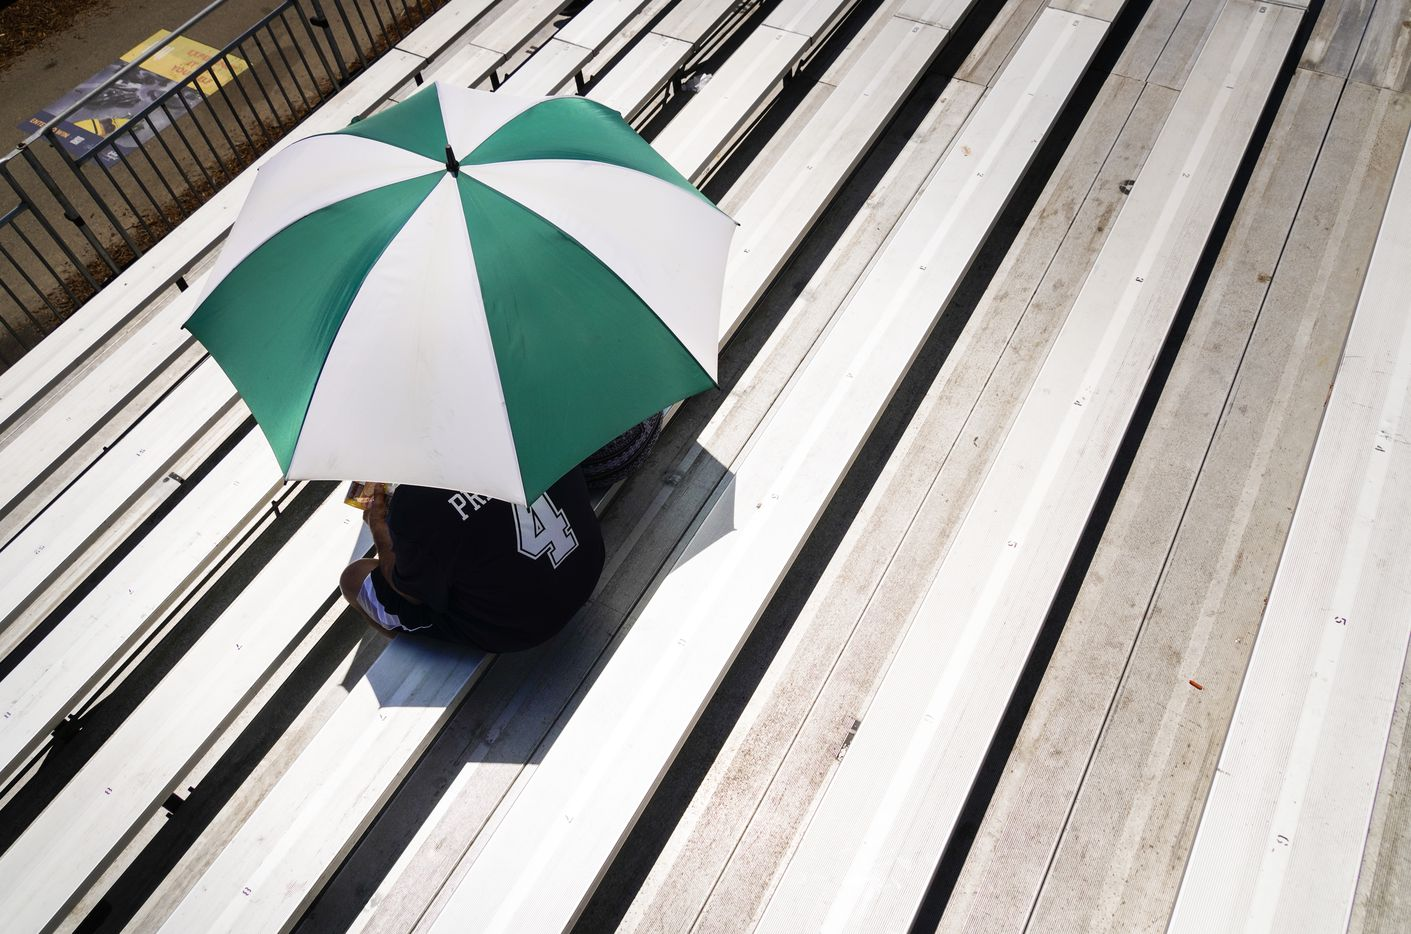 Dallas Cowboys fans find shade under an umbrella as they watch the team practice at training camp on Wednesday, July 28, 2021, in Oxnard, Calif.